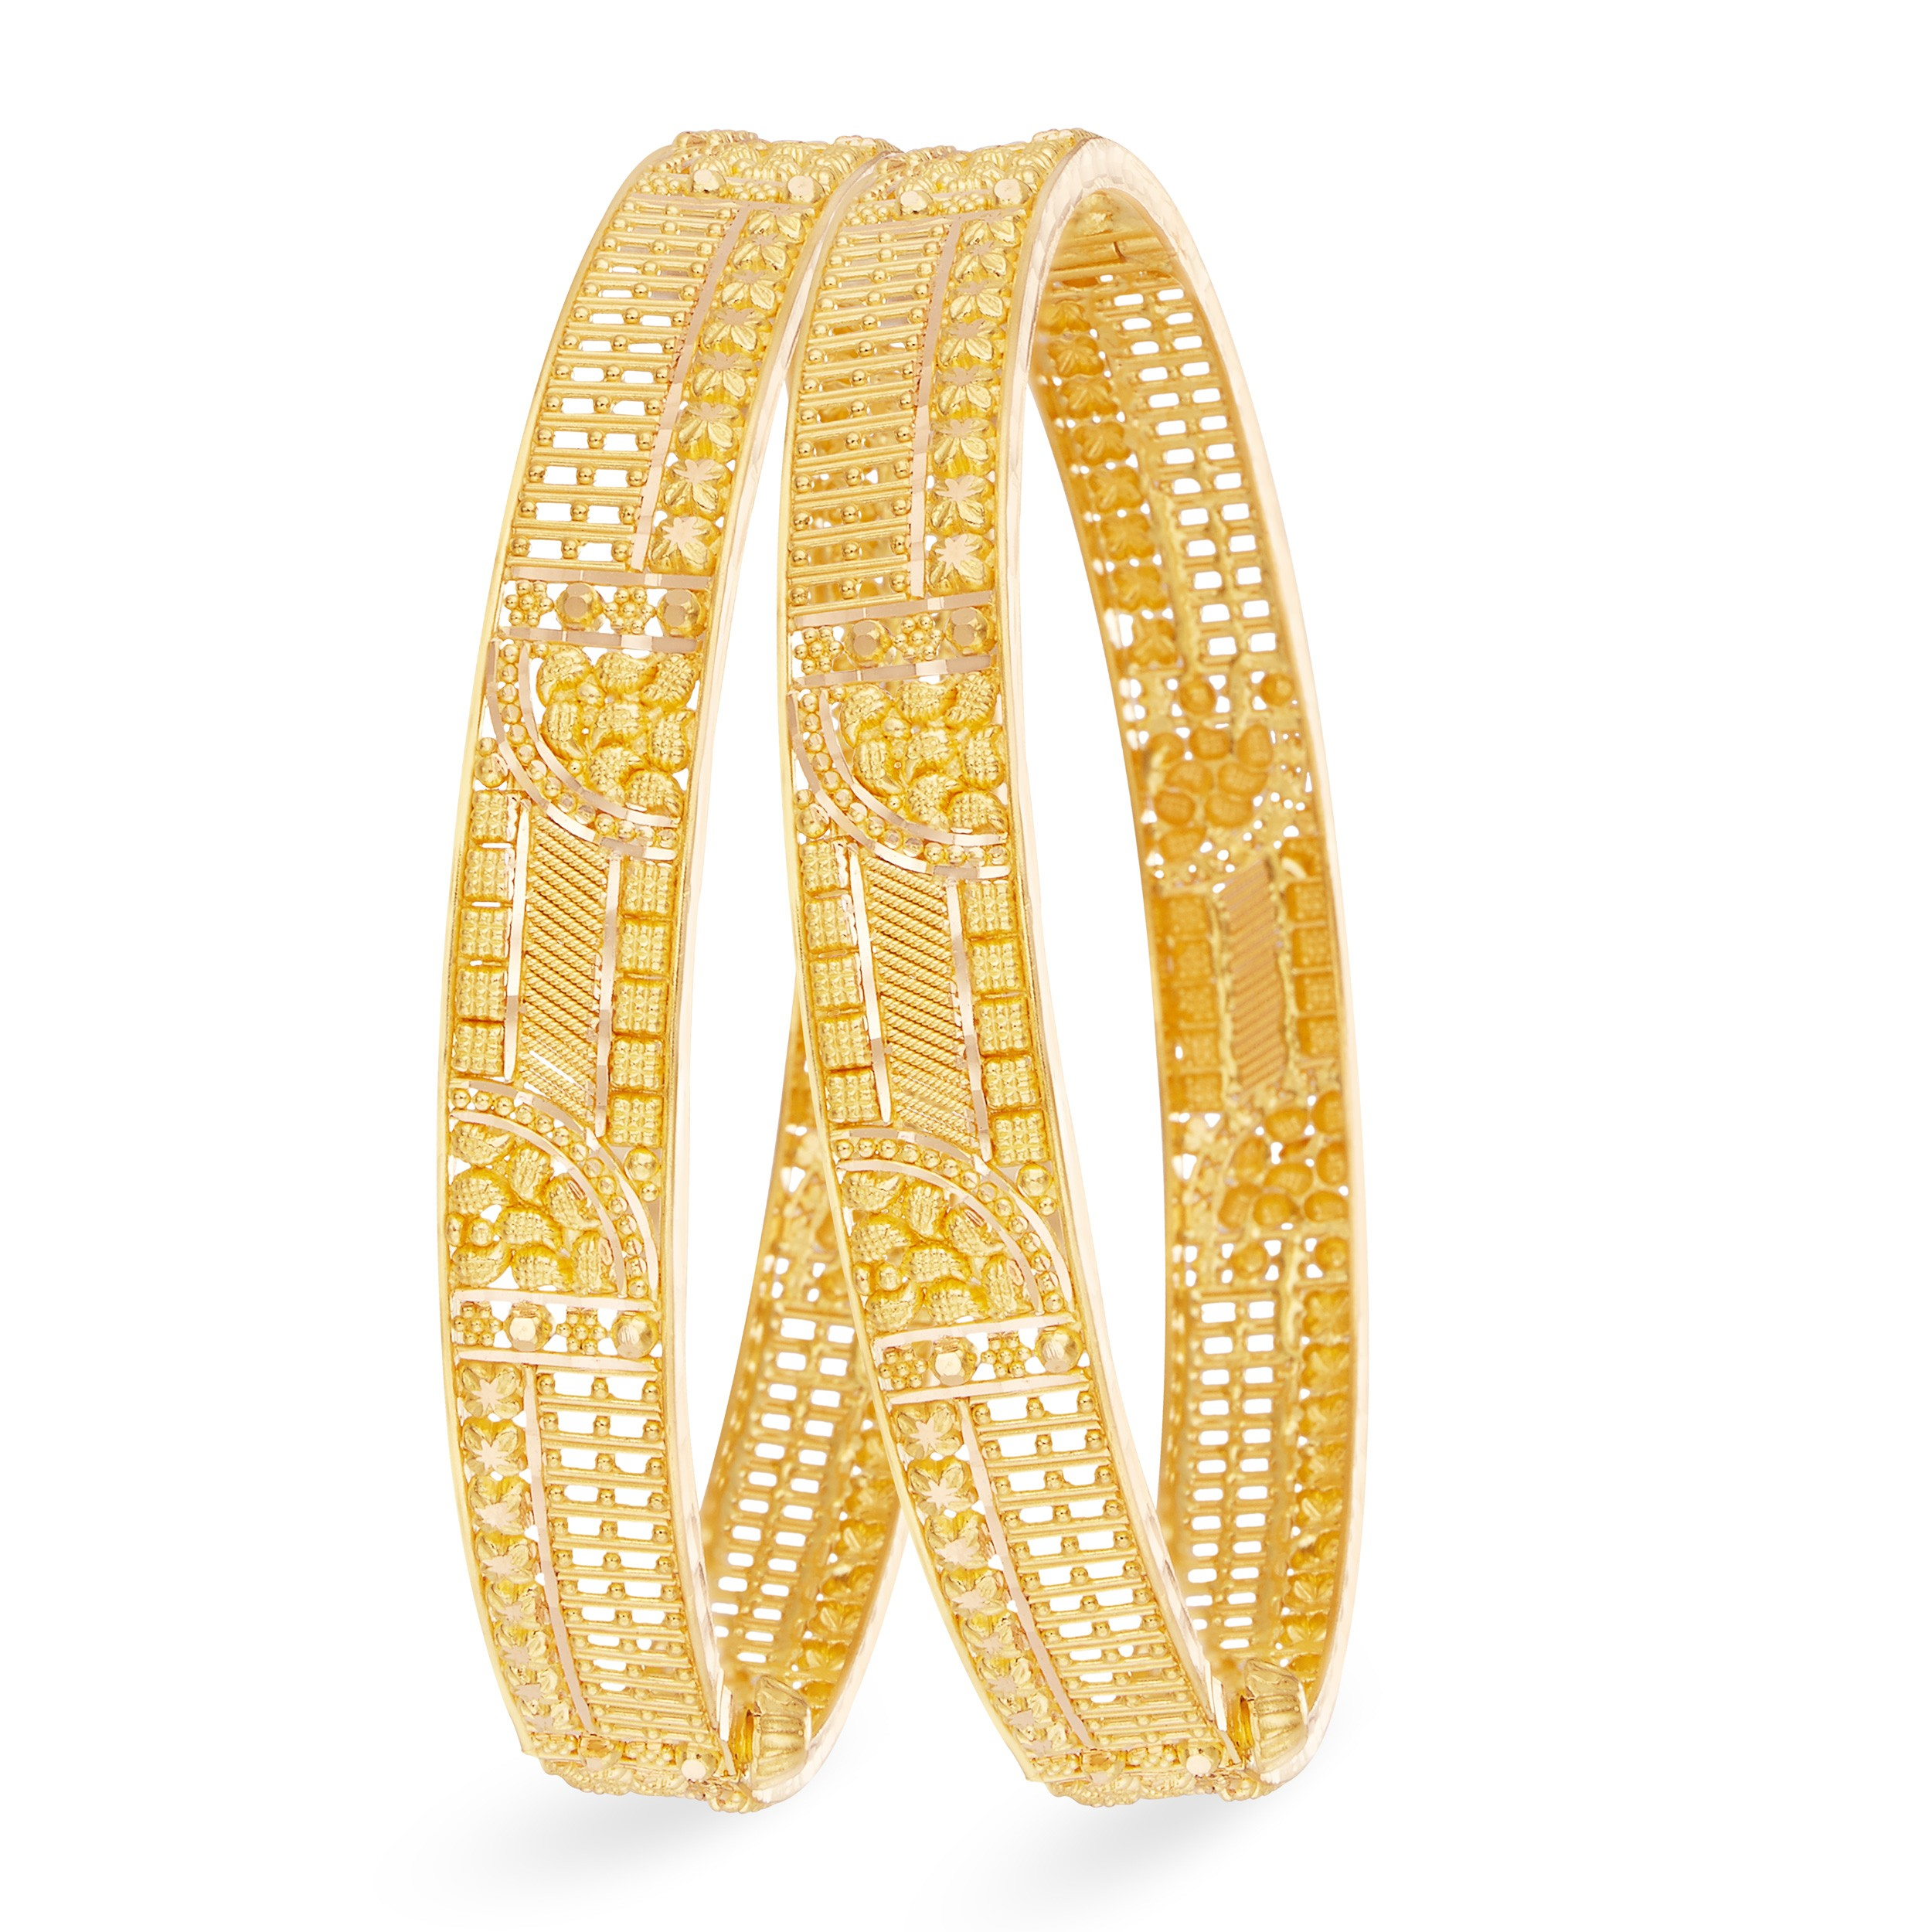 diamond jewellery coin bangle bracelet jewelry cheval white bangles fullscreen view lyst yellow roberto gold